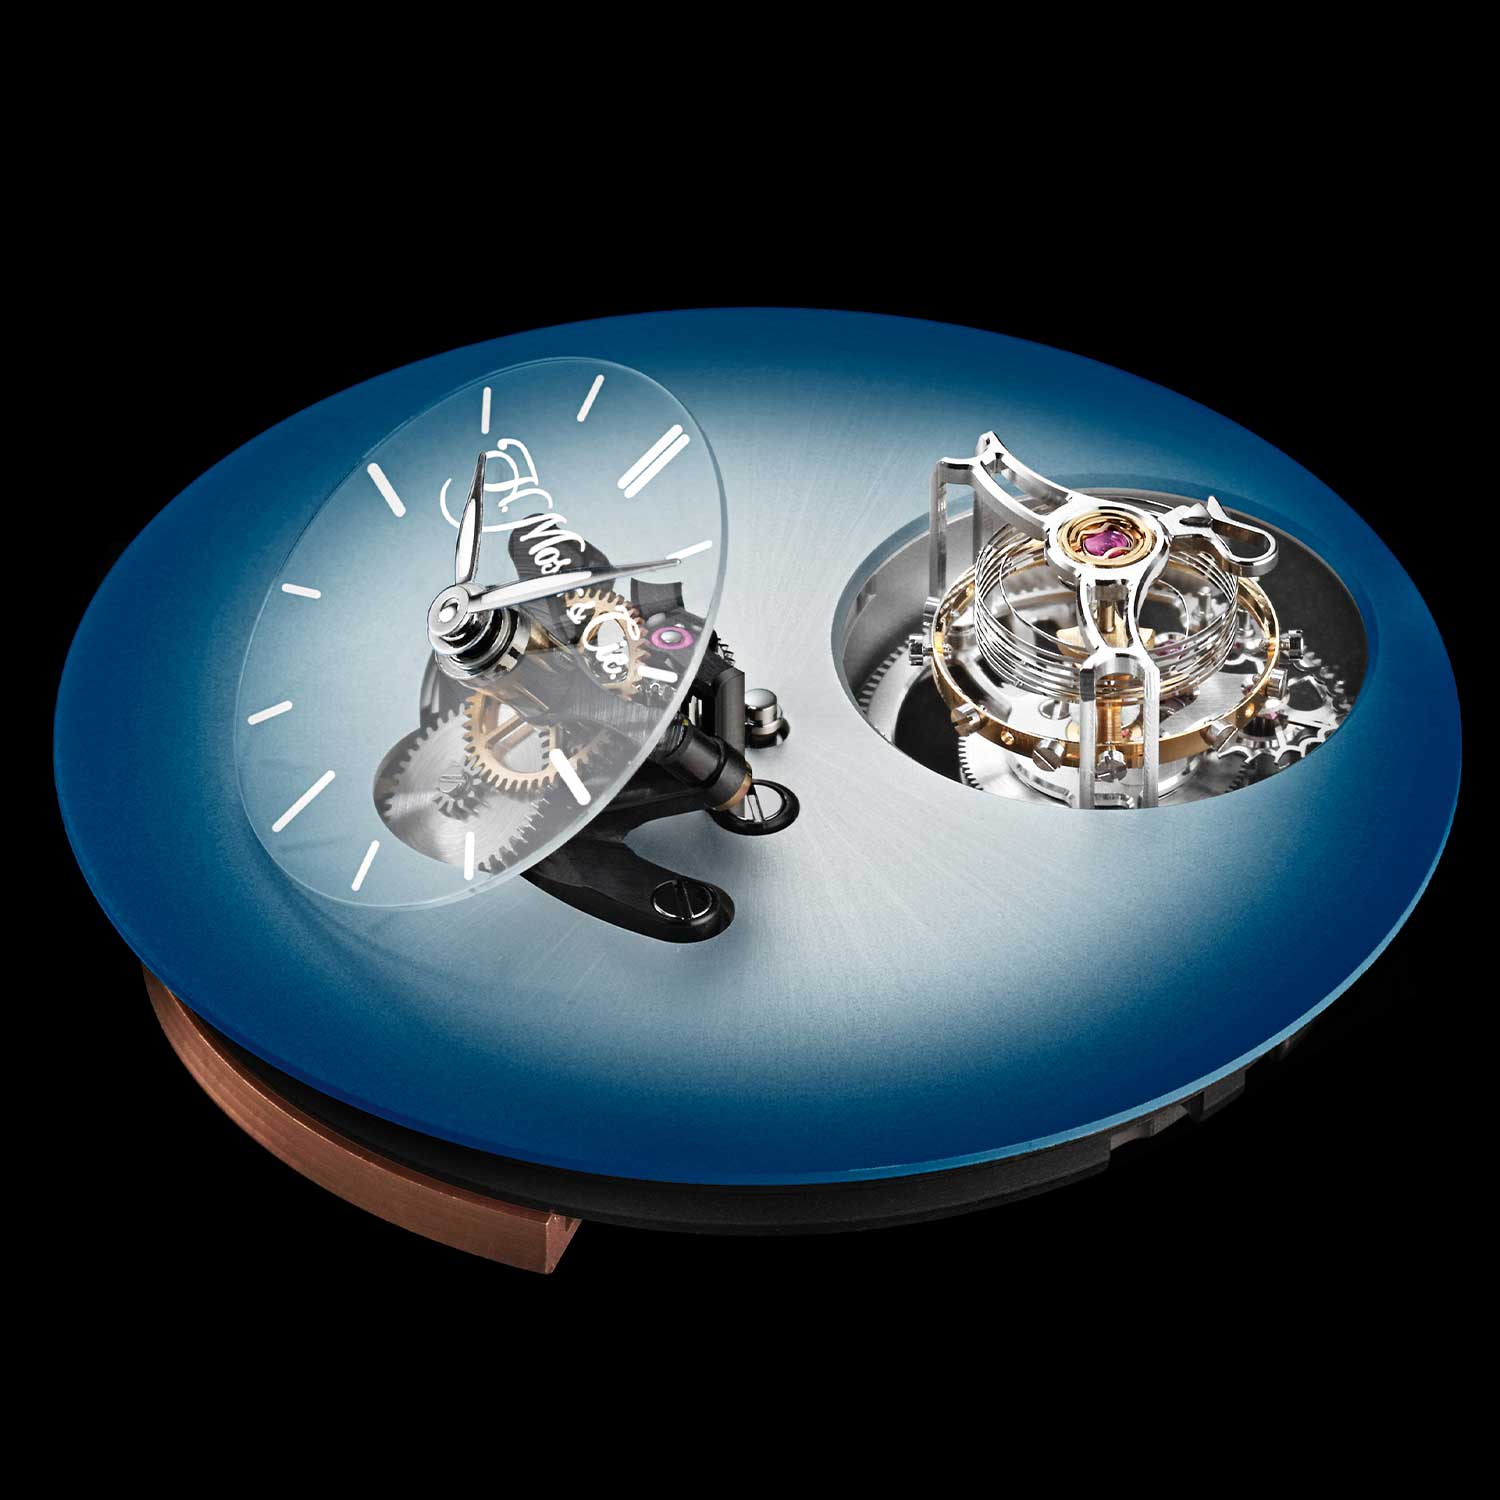 Bare dial of the MB&F × H. Moser Endeavour Cylindrical Tourbillon with the Funky Blue dial